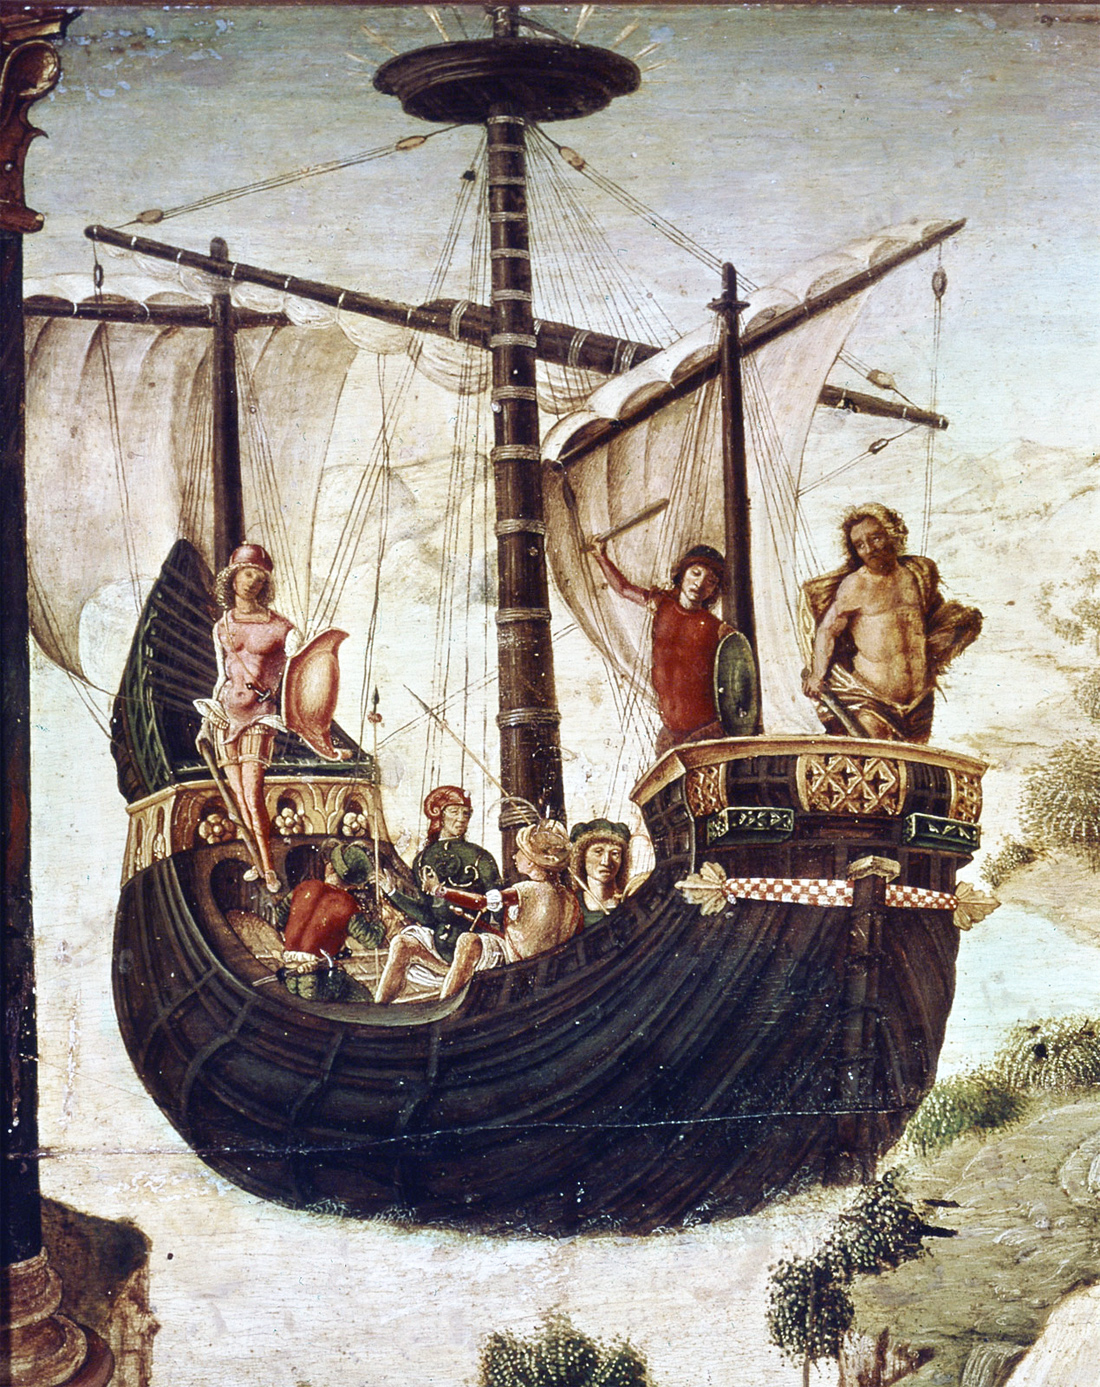 The Argonauts, by Lorenzo Costa, c. 1488. Museo Civico, Padua, Italy.